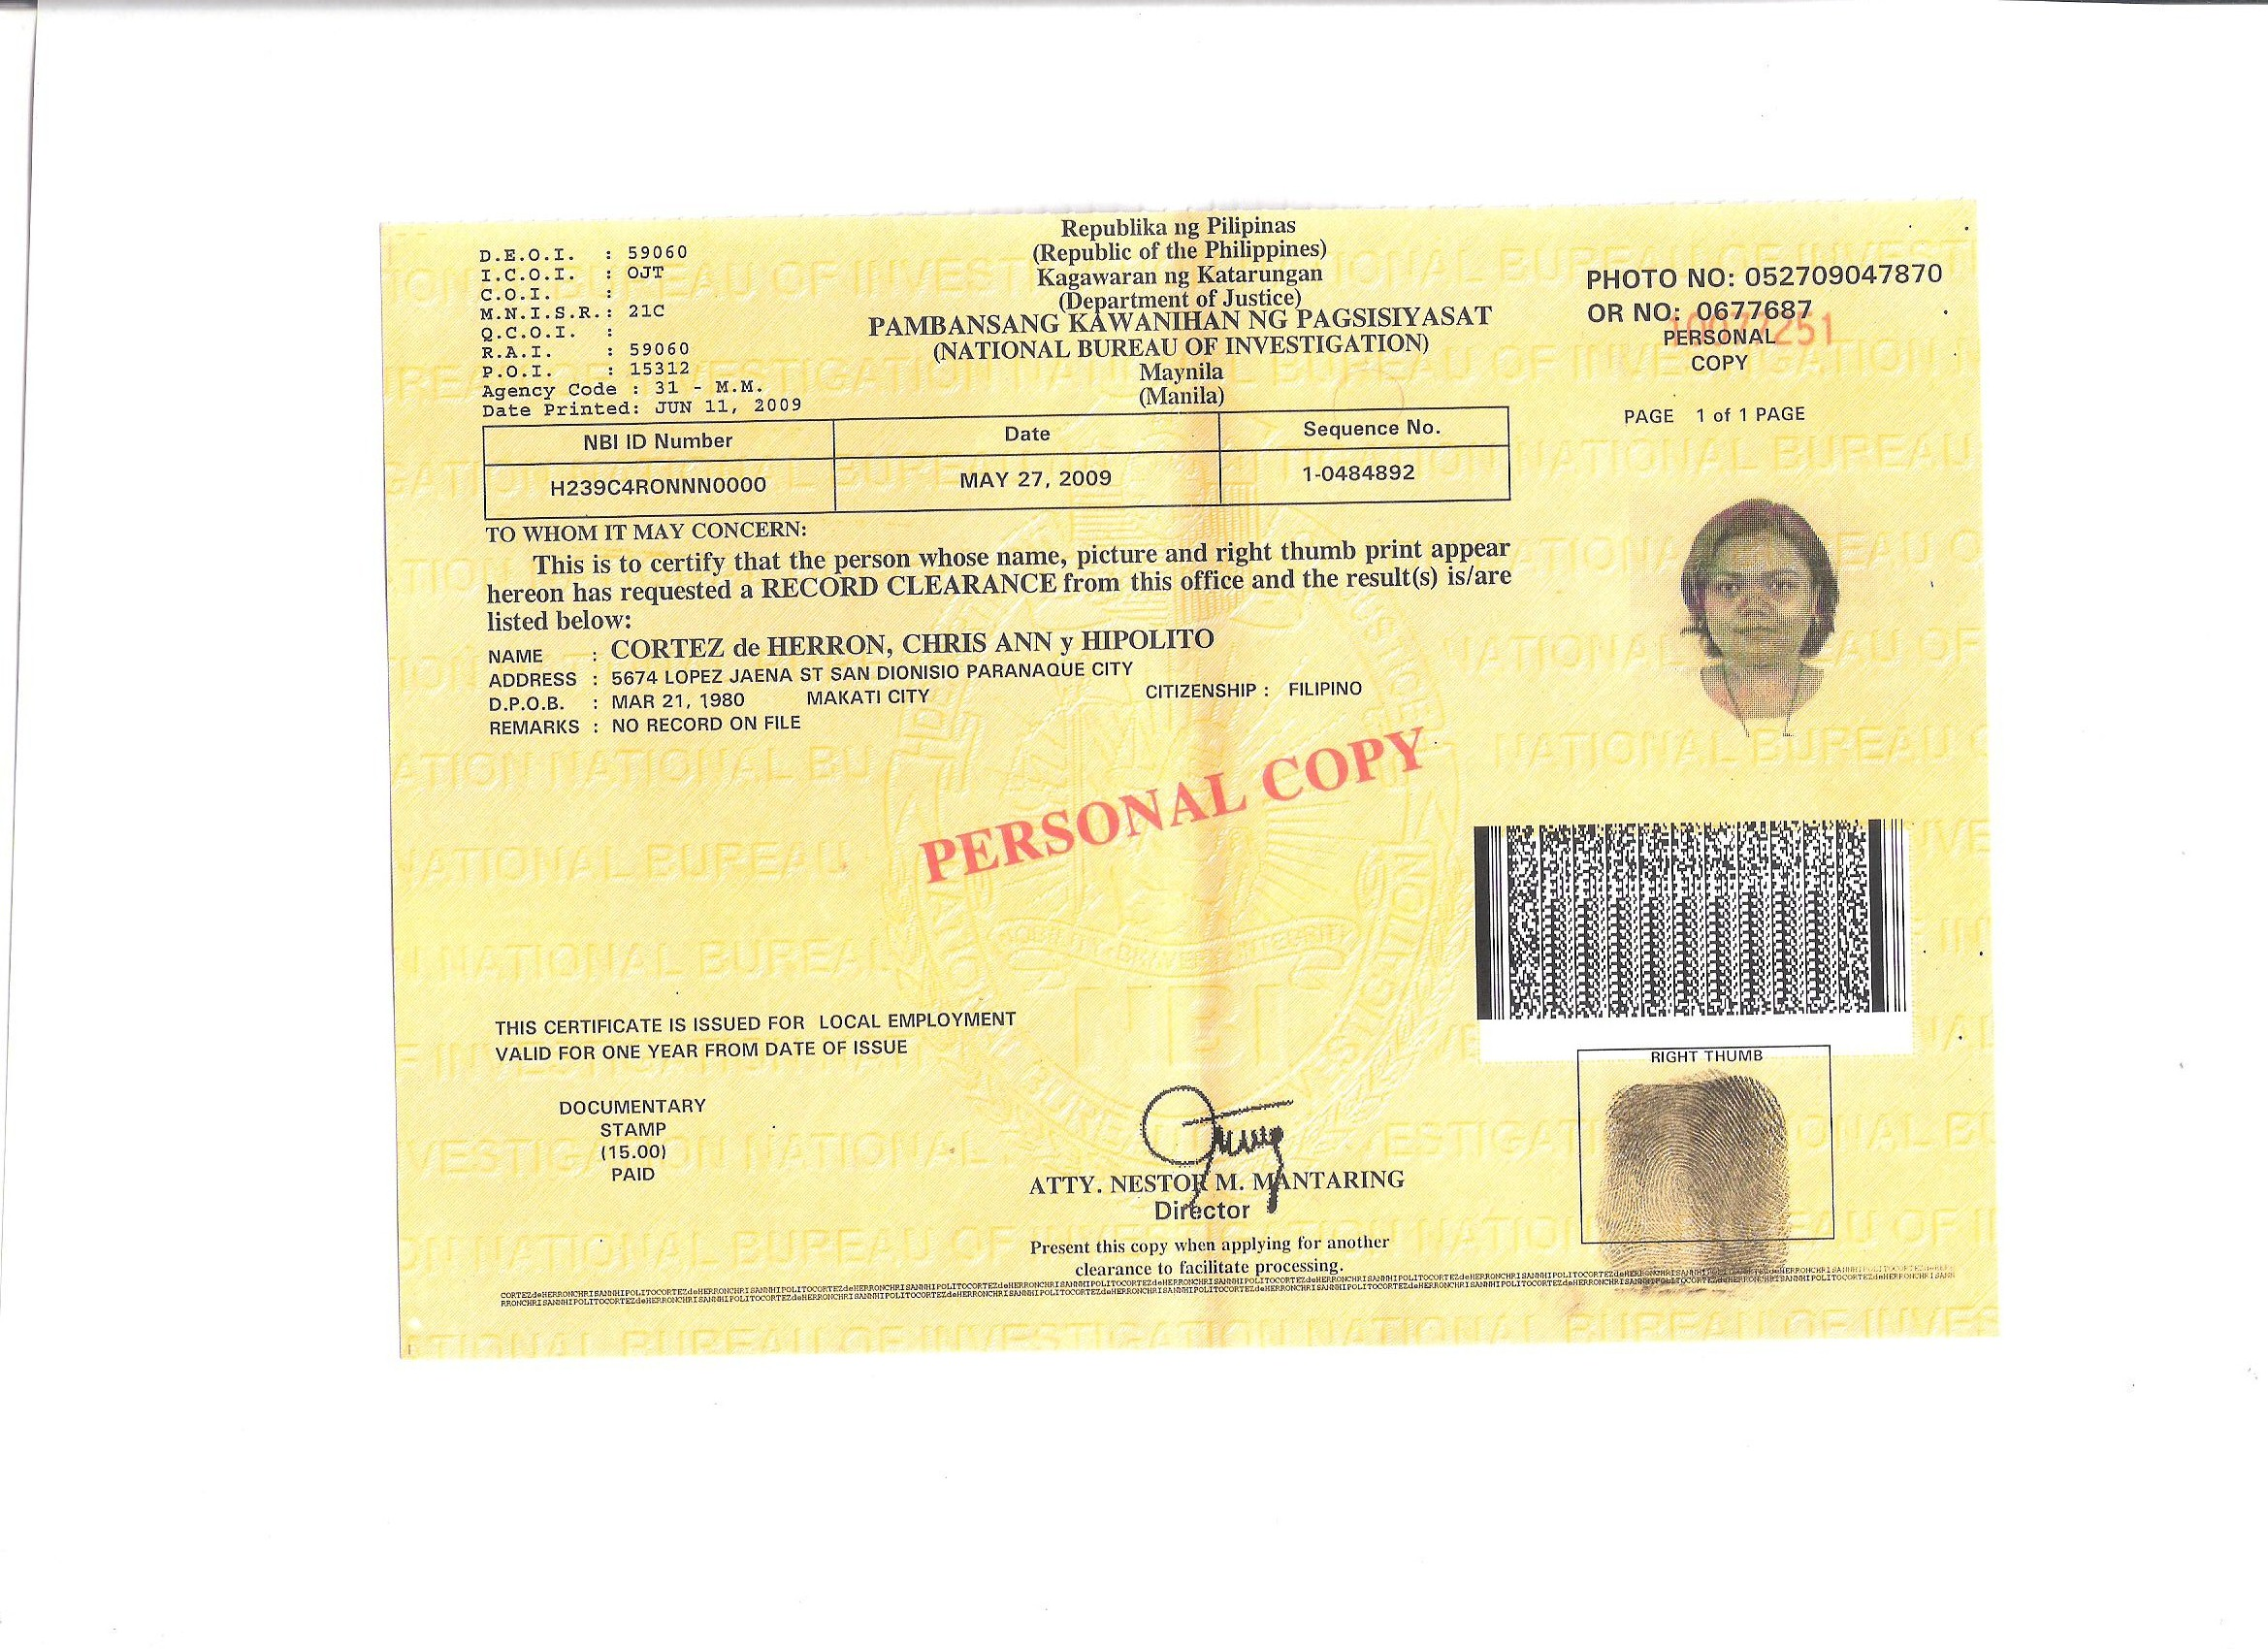 Hookup security clearance id